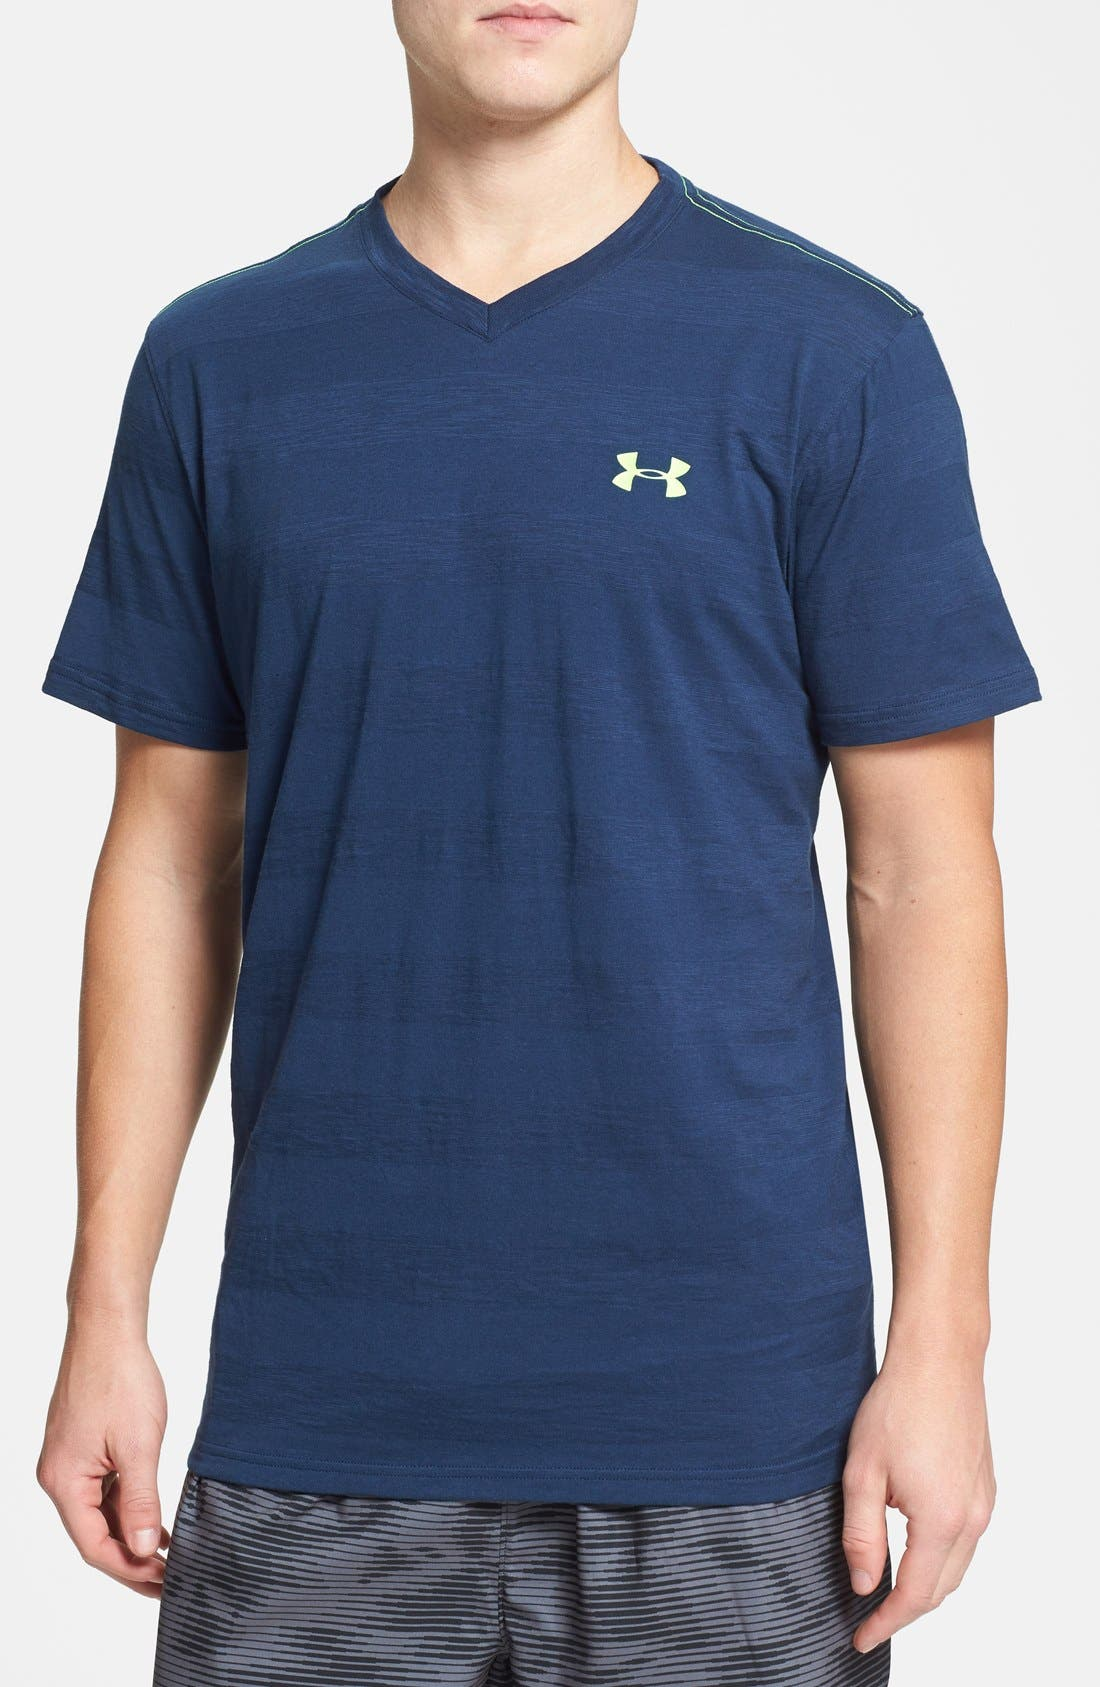 Alternate Image 1 Selected - Under Armour Charged Cotton® Stripe V-Neck T-Shirt